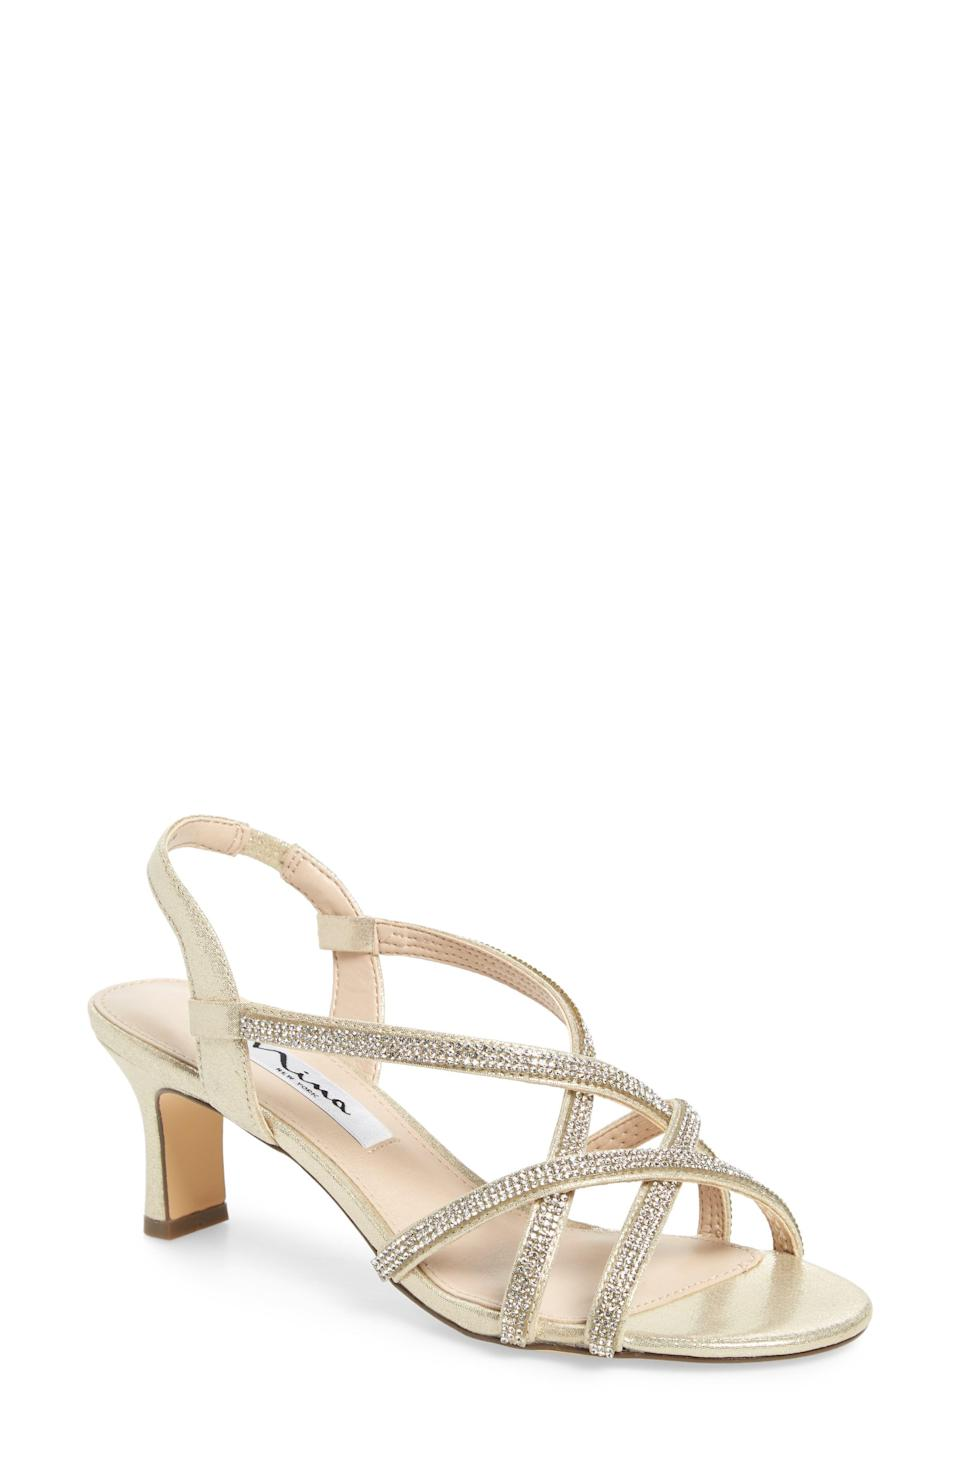 """<p><strong>NINA</strong></p><p>nordstrom.com</p><p><strong>$88.95</strong></p><p><a href=""""https://go.redirectingat.com?id=74968X1596630&url=https%3A%2F%2Fwww.nordstrom.com%2Fs%2Fnina-noni-crystal-embellished-slingback-sandal-women%2F5243791&sref=https%3A%2F%2Fwww.thepioneerwoman.com%2Ffashion-style%2Fg36122557%2Fcomfortable-wedding-shoes%2F"""" rel=""""nofollow noopener"""" target=""""_blank"""" data-ylk=""""slk:Shop Now"""" class=""""link rapid-noclick-resp"""">Shop Now</a></p><p>Dress up with a more classic wedding shoe, embellished with crystals and an easy slingback. The low heel and cushioned footbed will allow you to dance all night.</p>"""